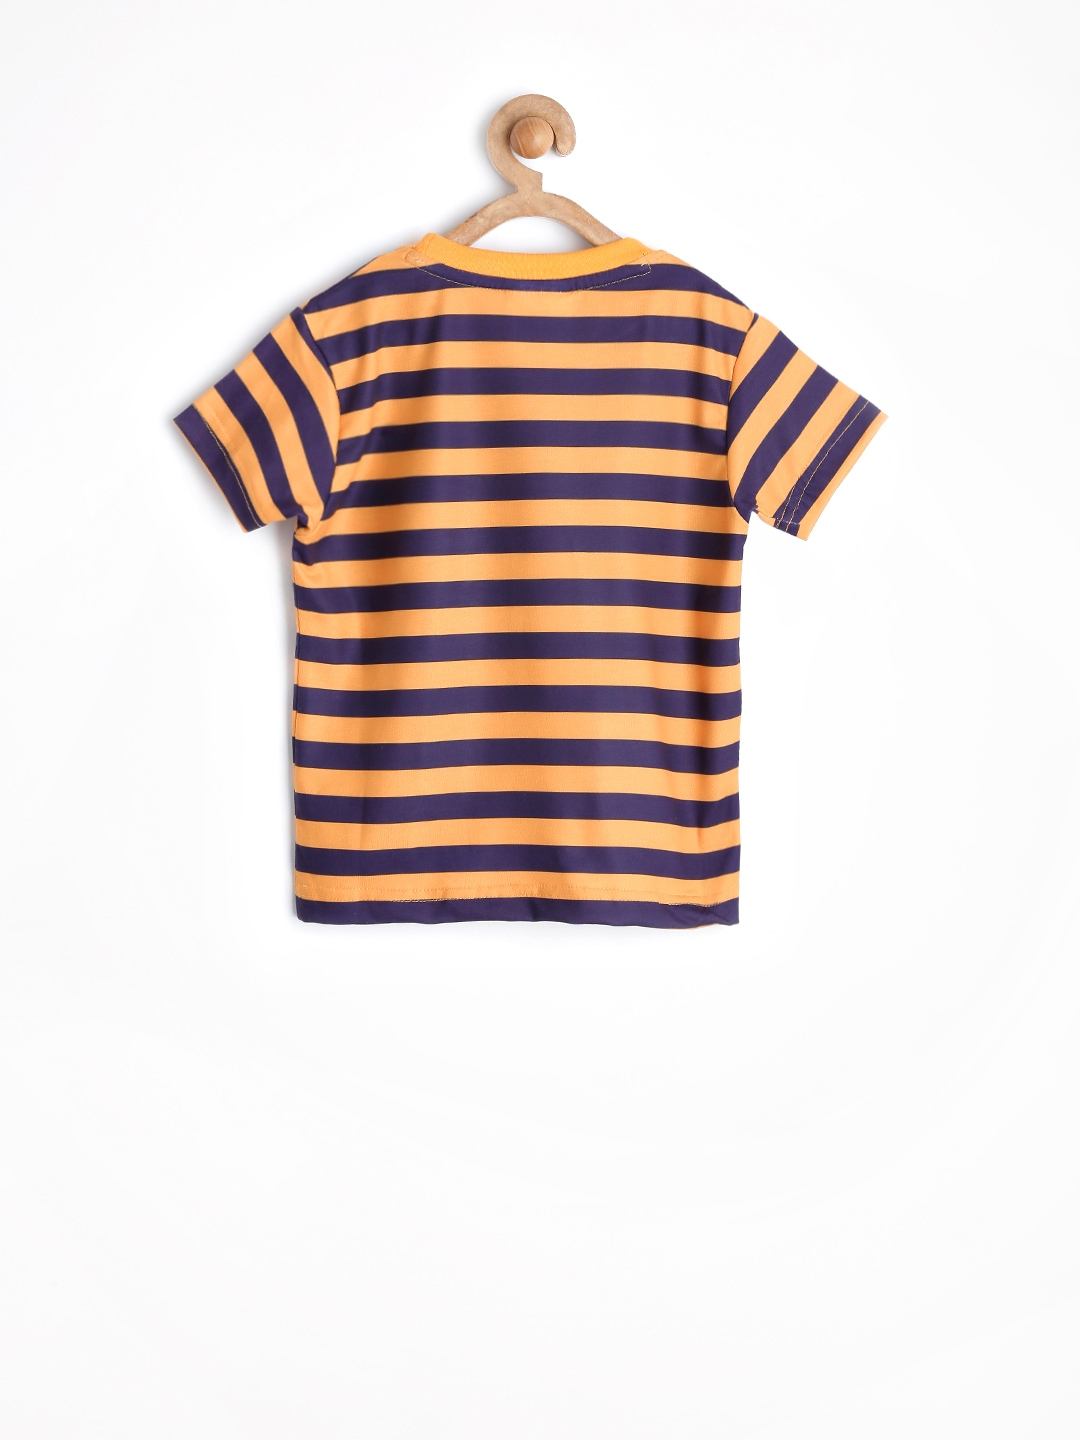 Myntra jungle book boys mustard yellow purple striped t for Purple and black striped t shirt